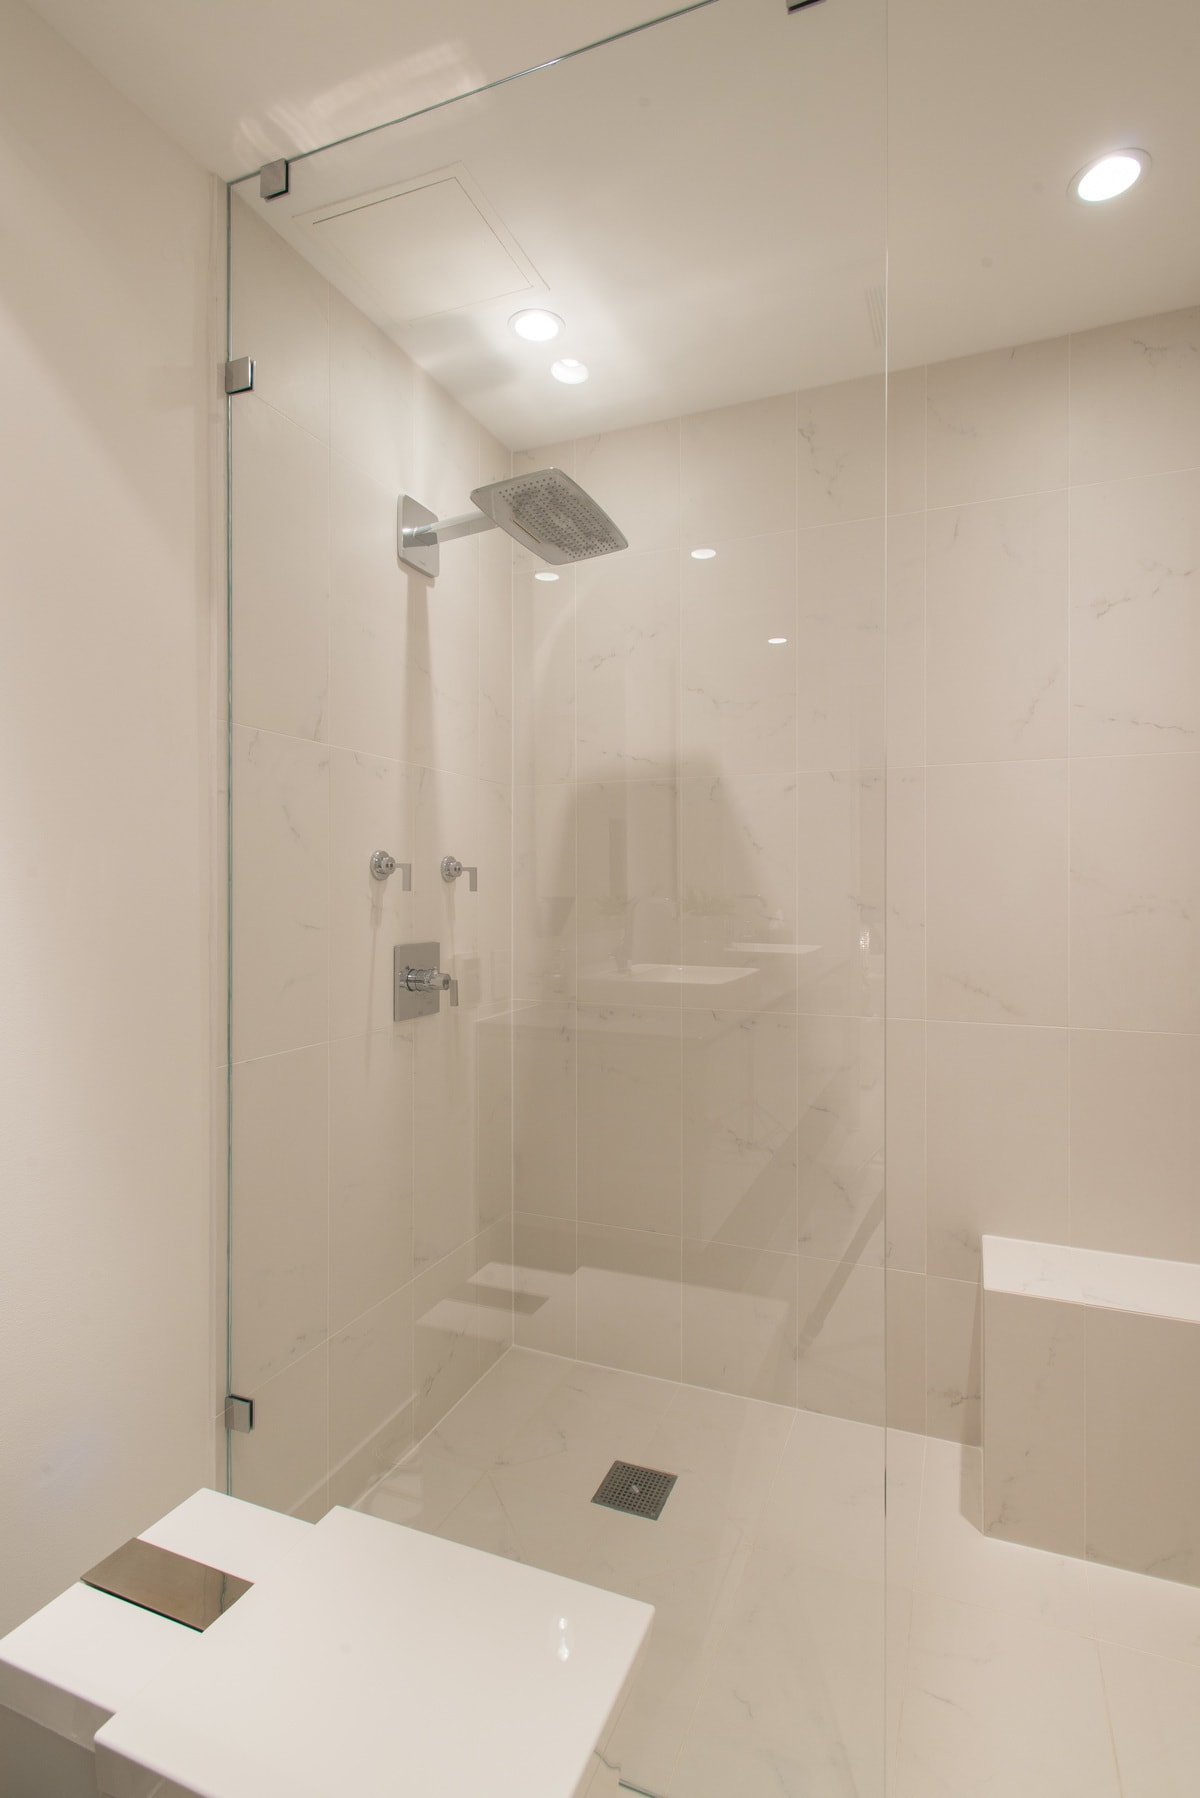 whilte marble shower with glass wall keeps the space clean and airy